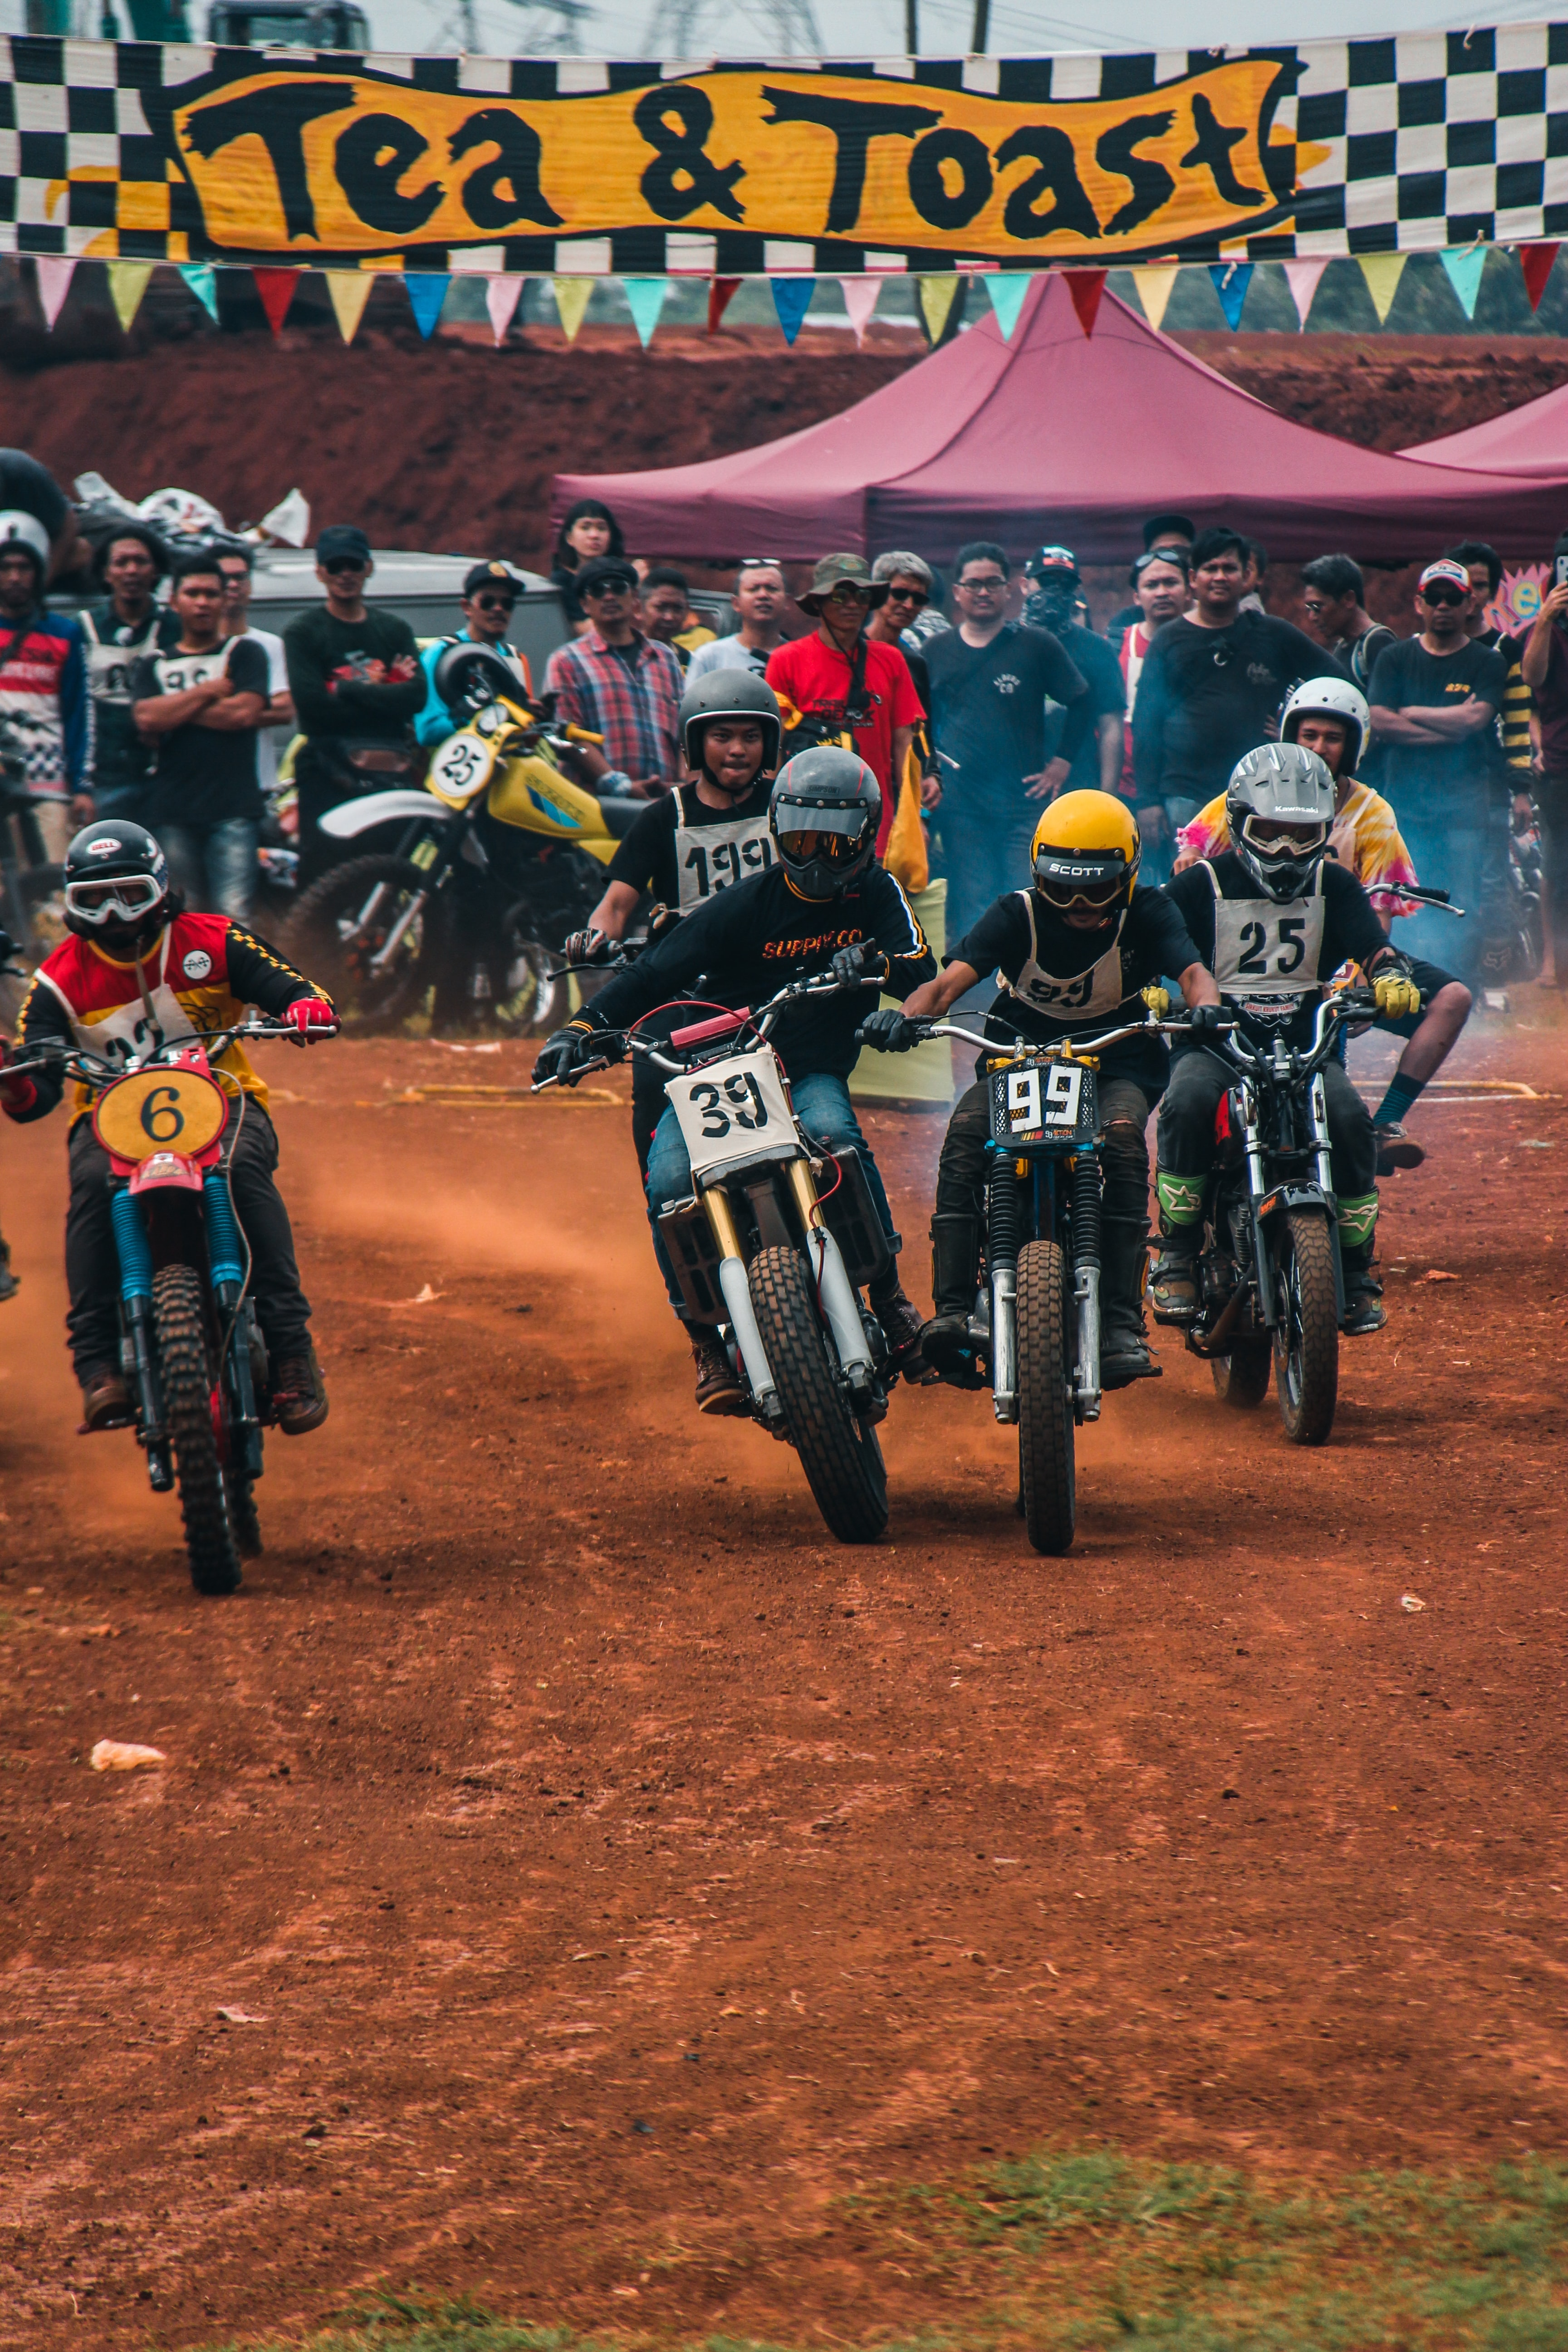 person riding dirt bikes in dirt bike competition on dirt track during daytime